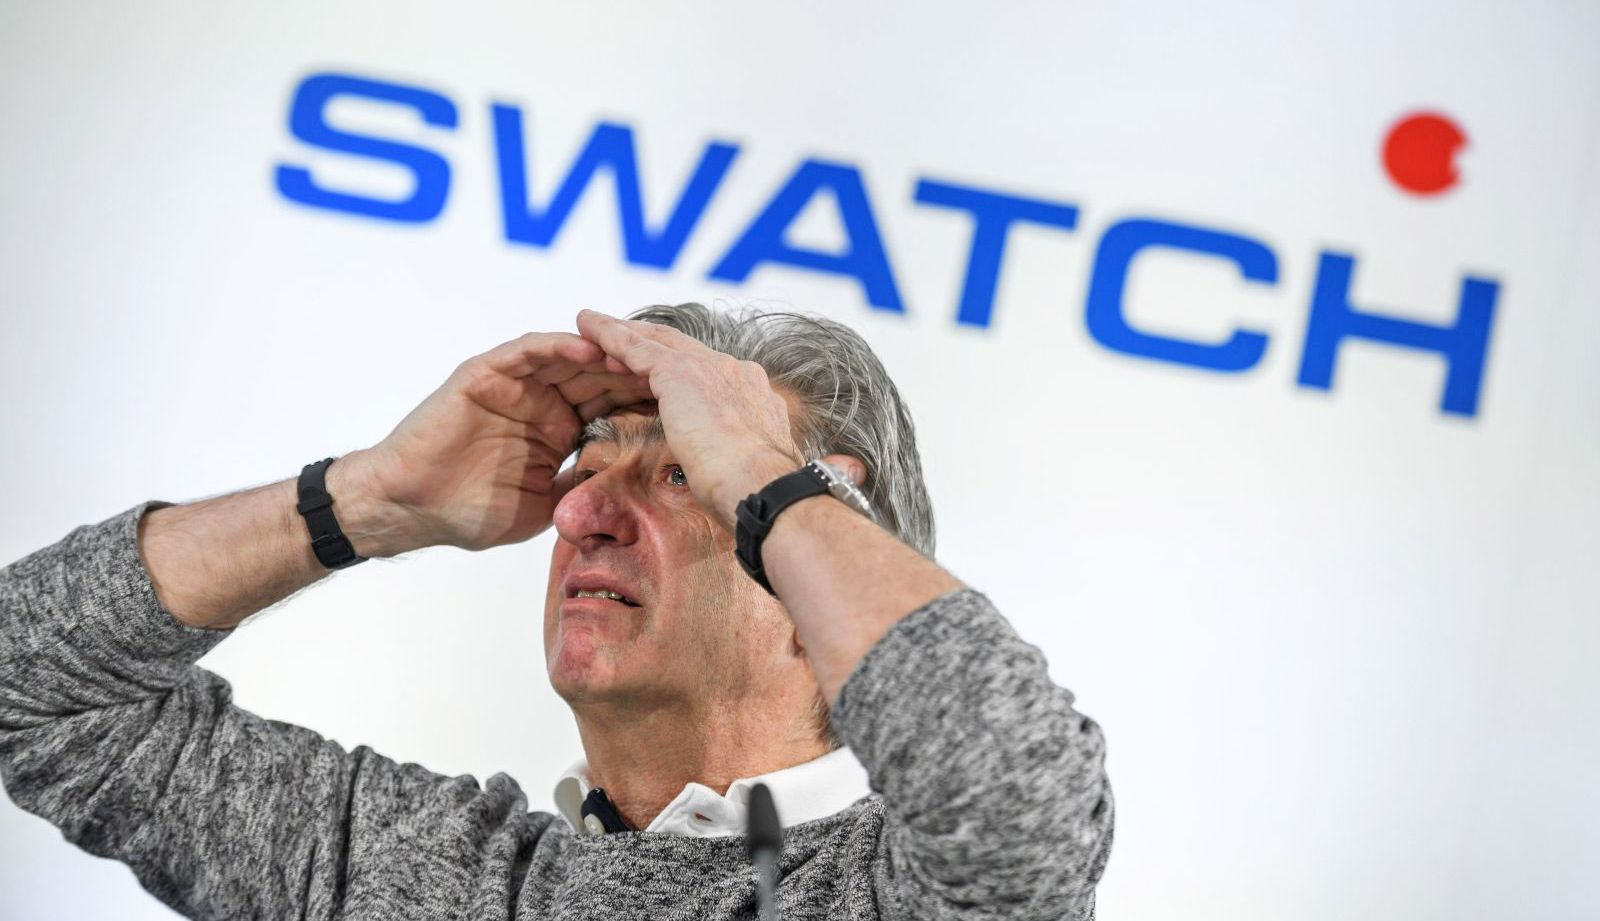 Swatch is developing its own operating system for smart watches